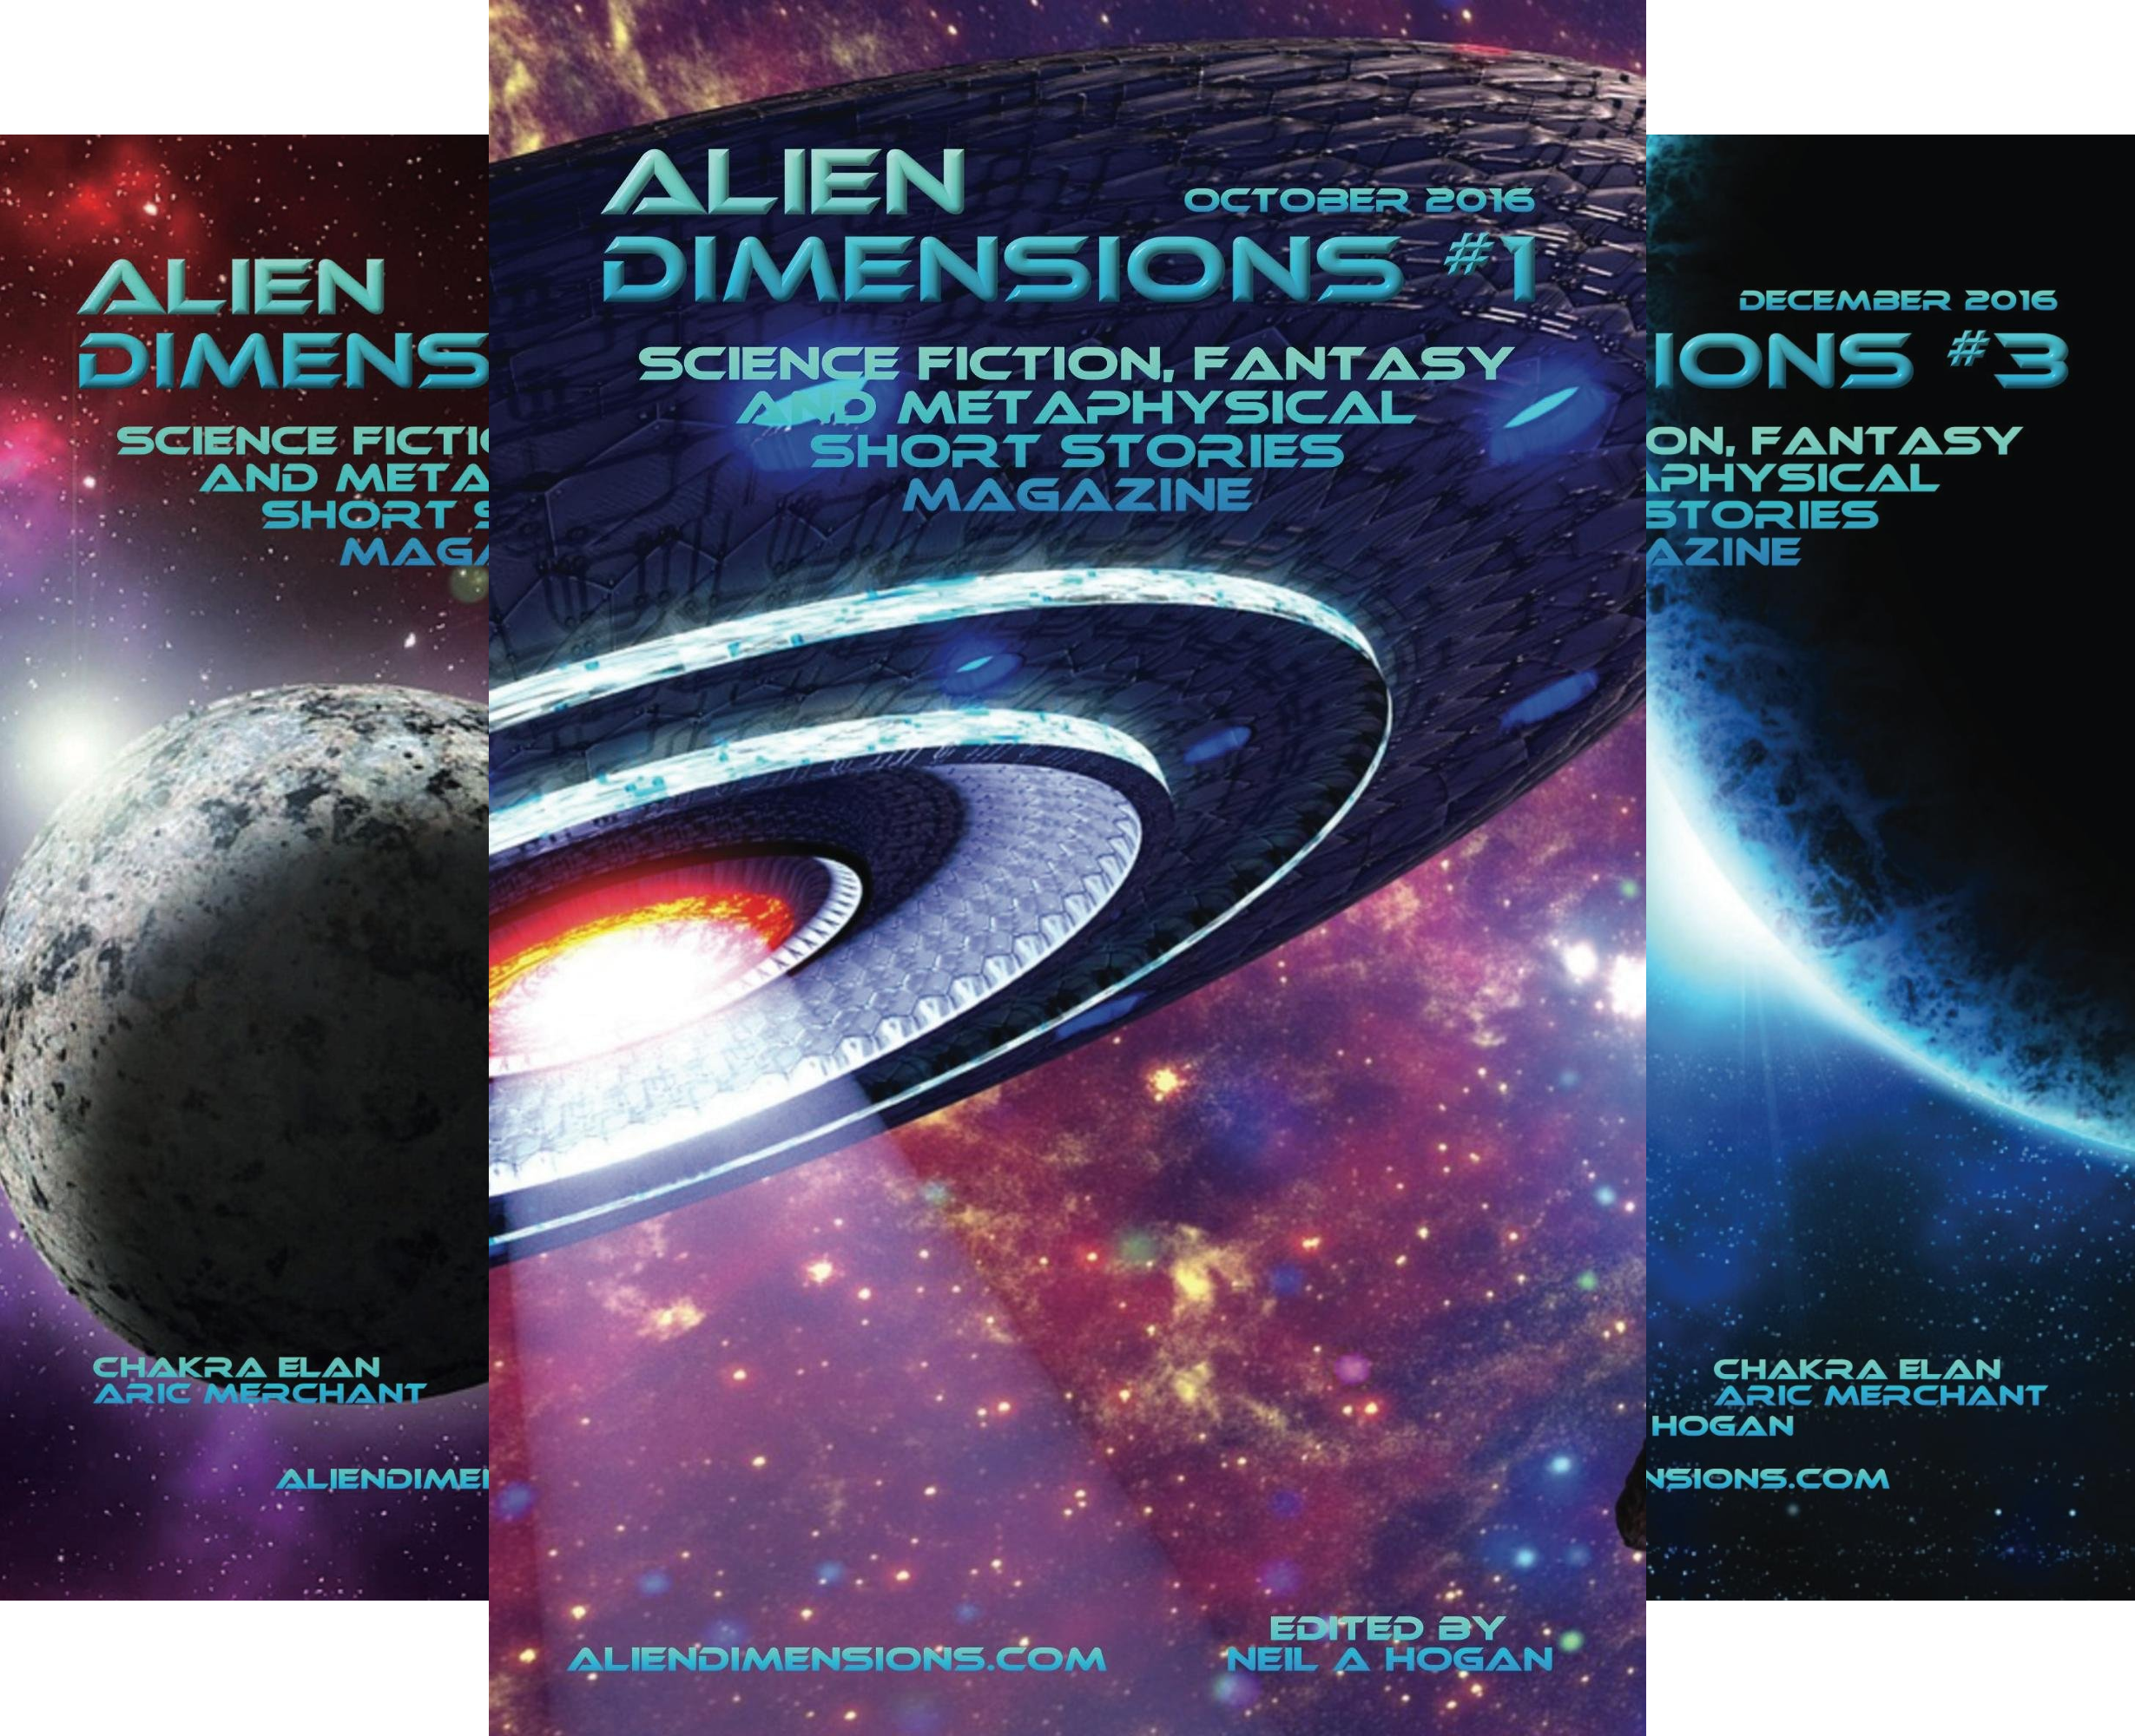 Alien Dimensions Magazine (7 Book Series)